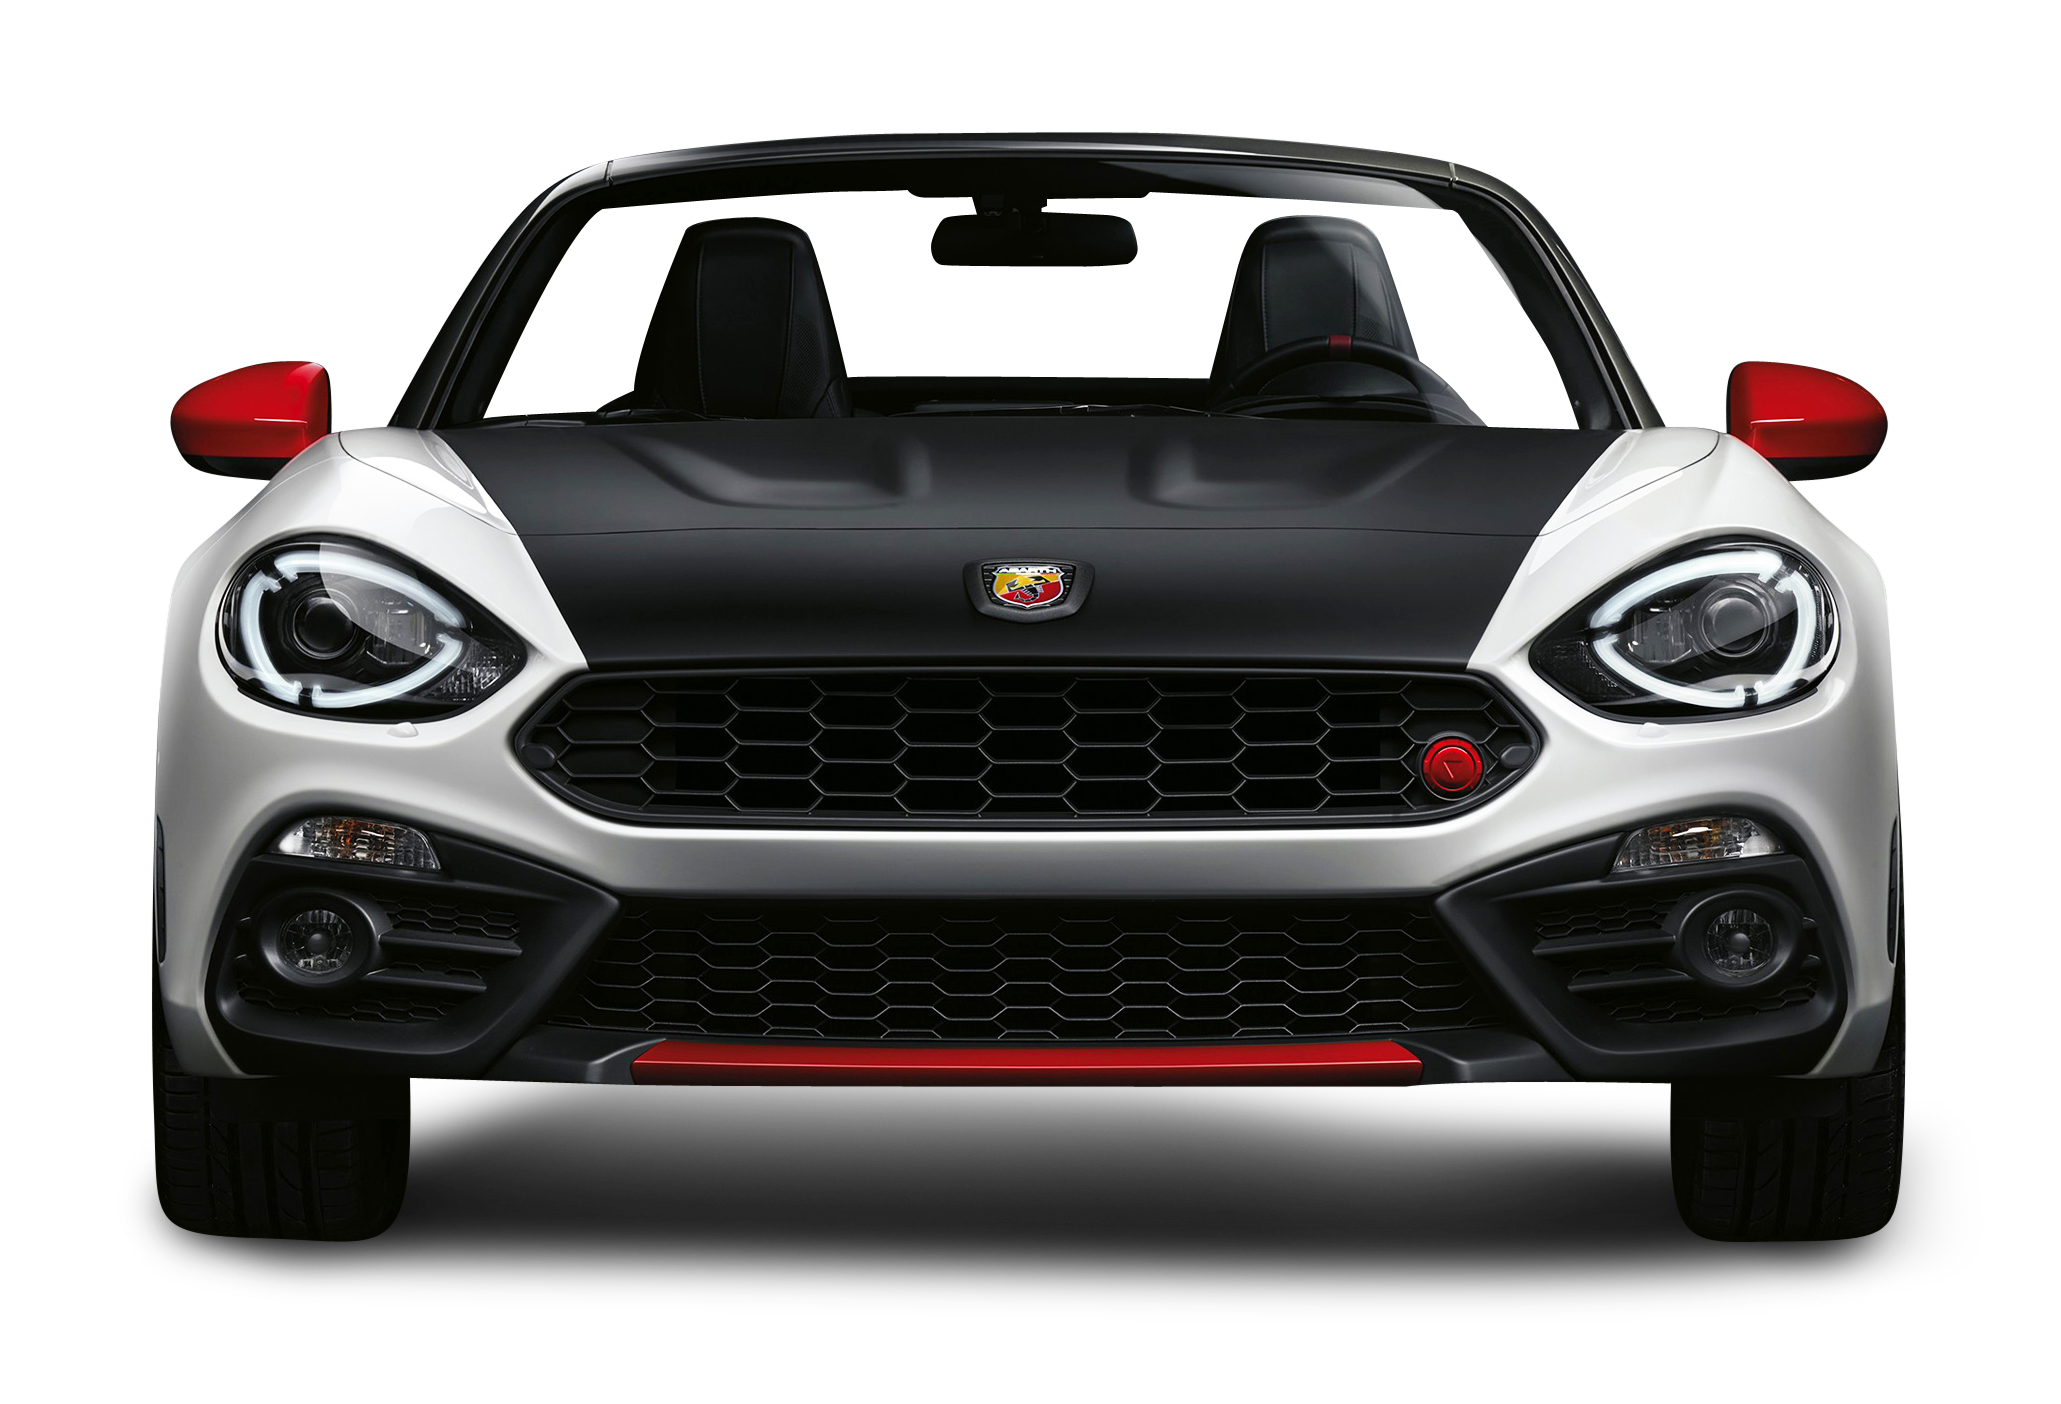 Black and White Fiat 124 Spider Abarth View Car